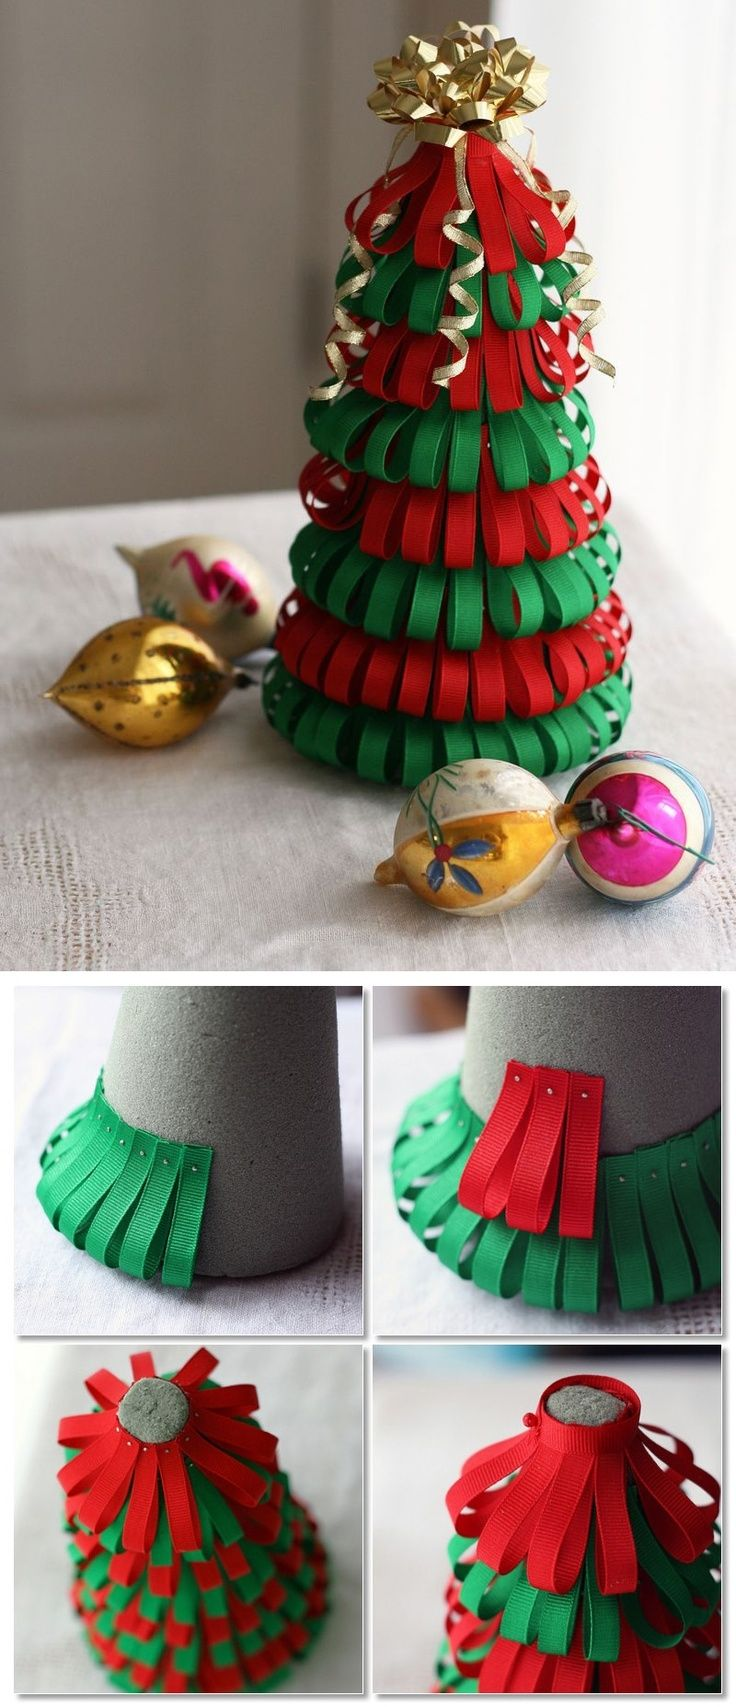 DIY Ribbon Christmas Tree diy ideas eady diy christmas tree christmas crafts crafts for kids